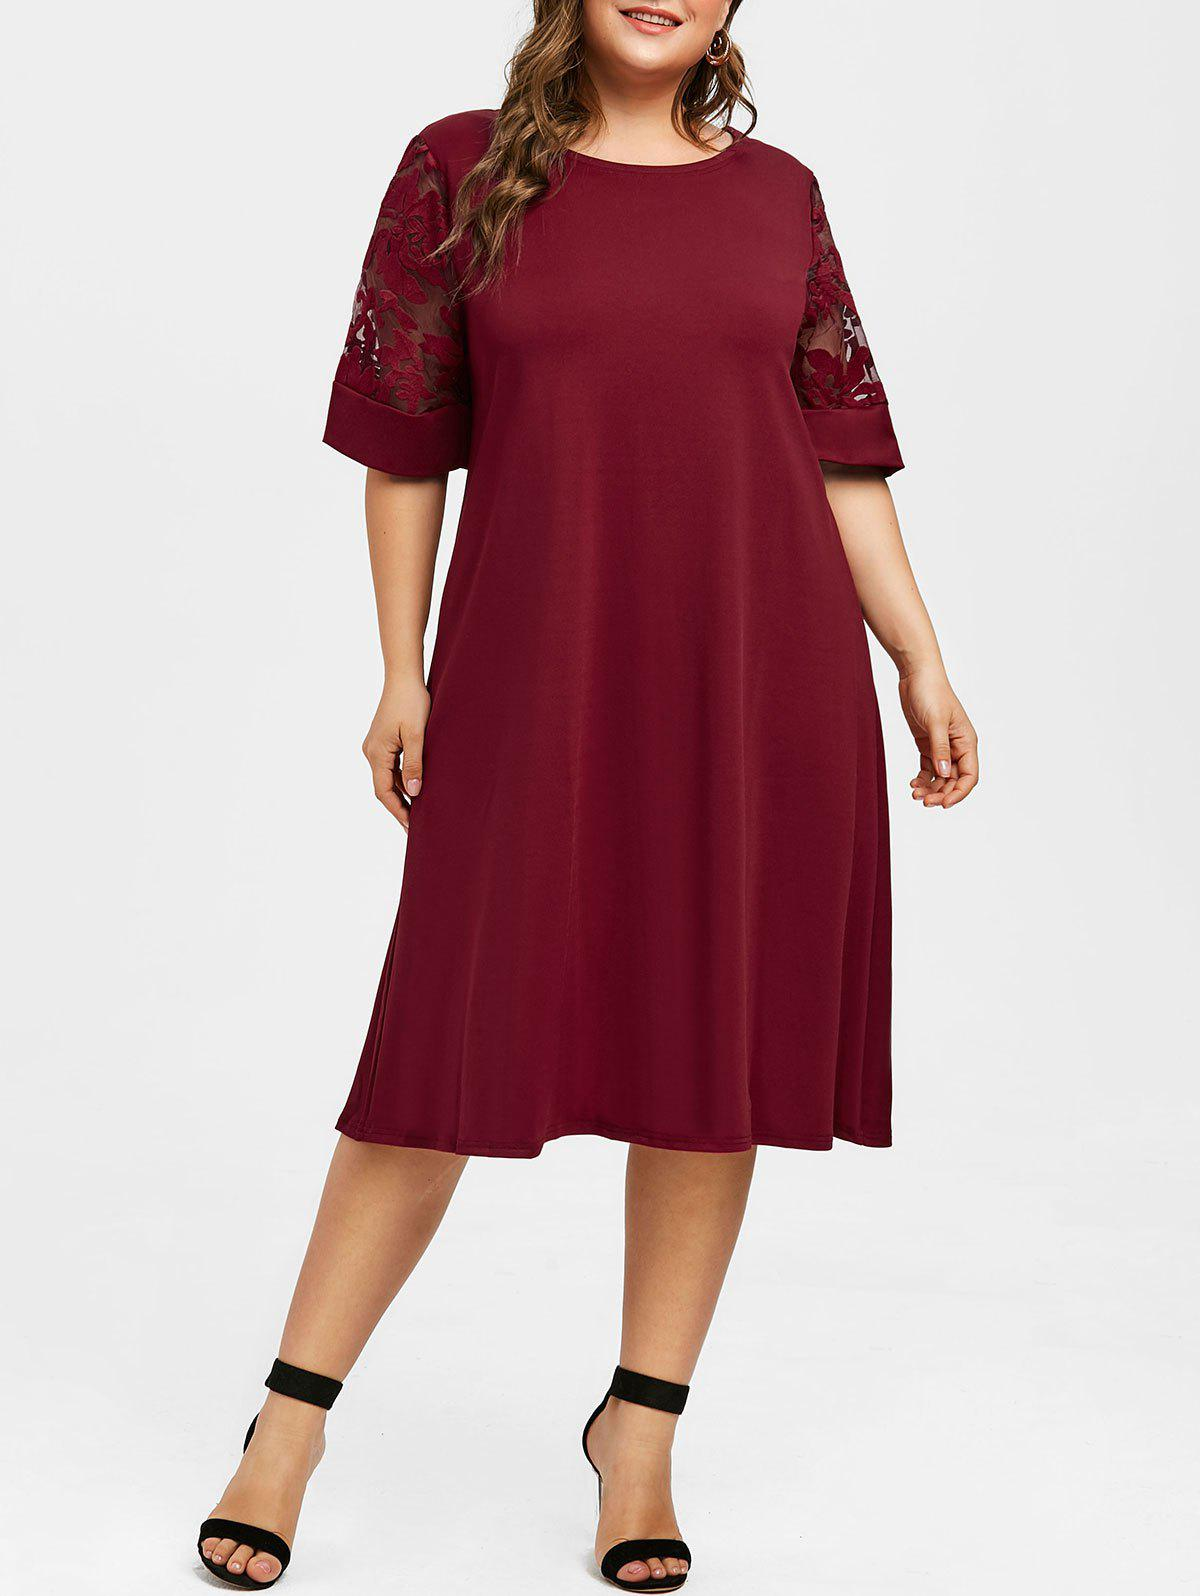 Robe Droite Brodee A Demi Manches De Grande Taille En Red Wine Rosegal Com France